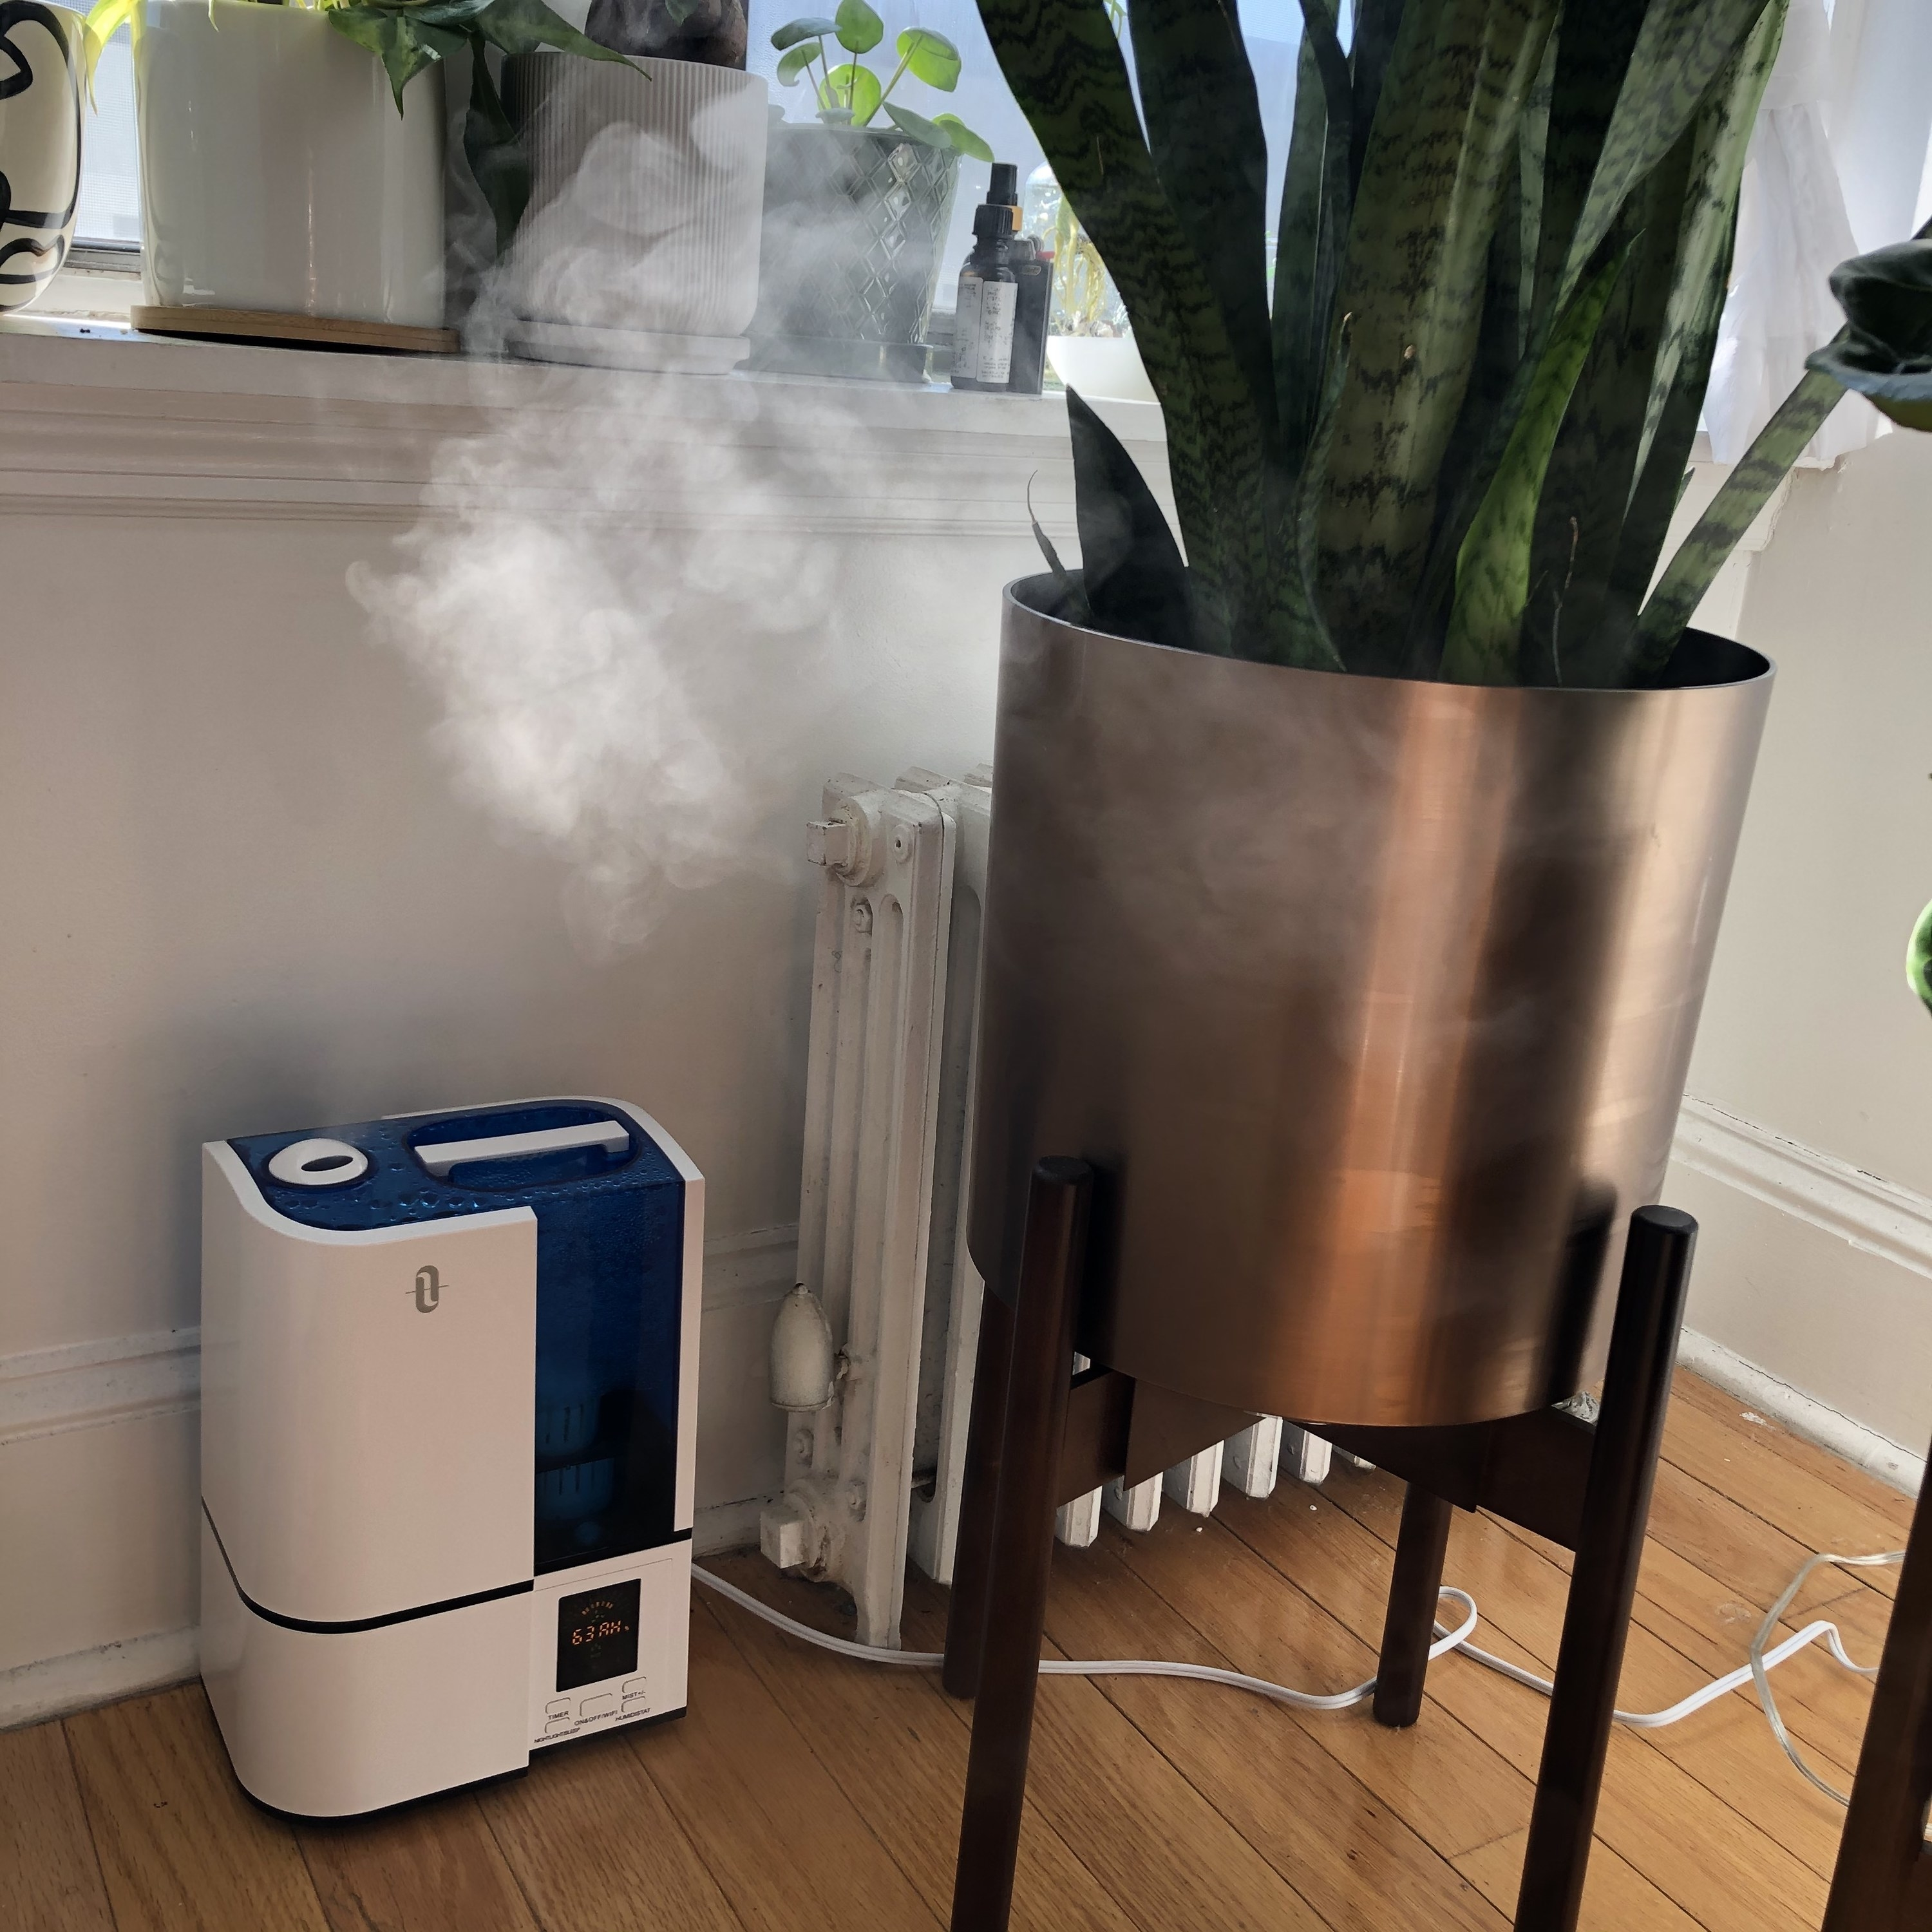 buzzfeed writer's  humidifier misting the air